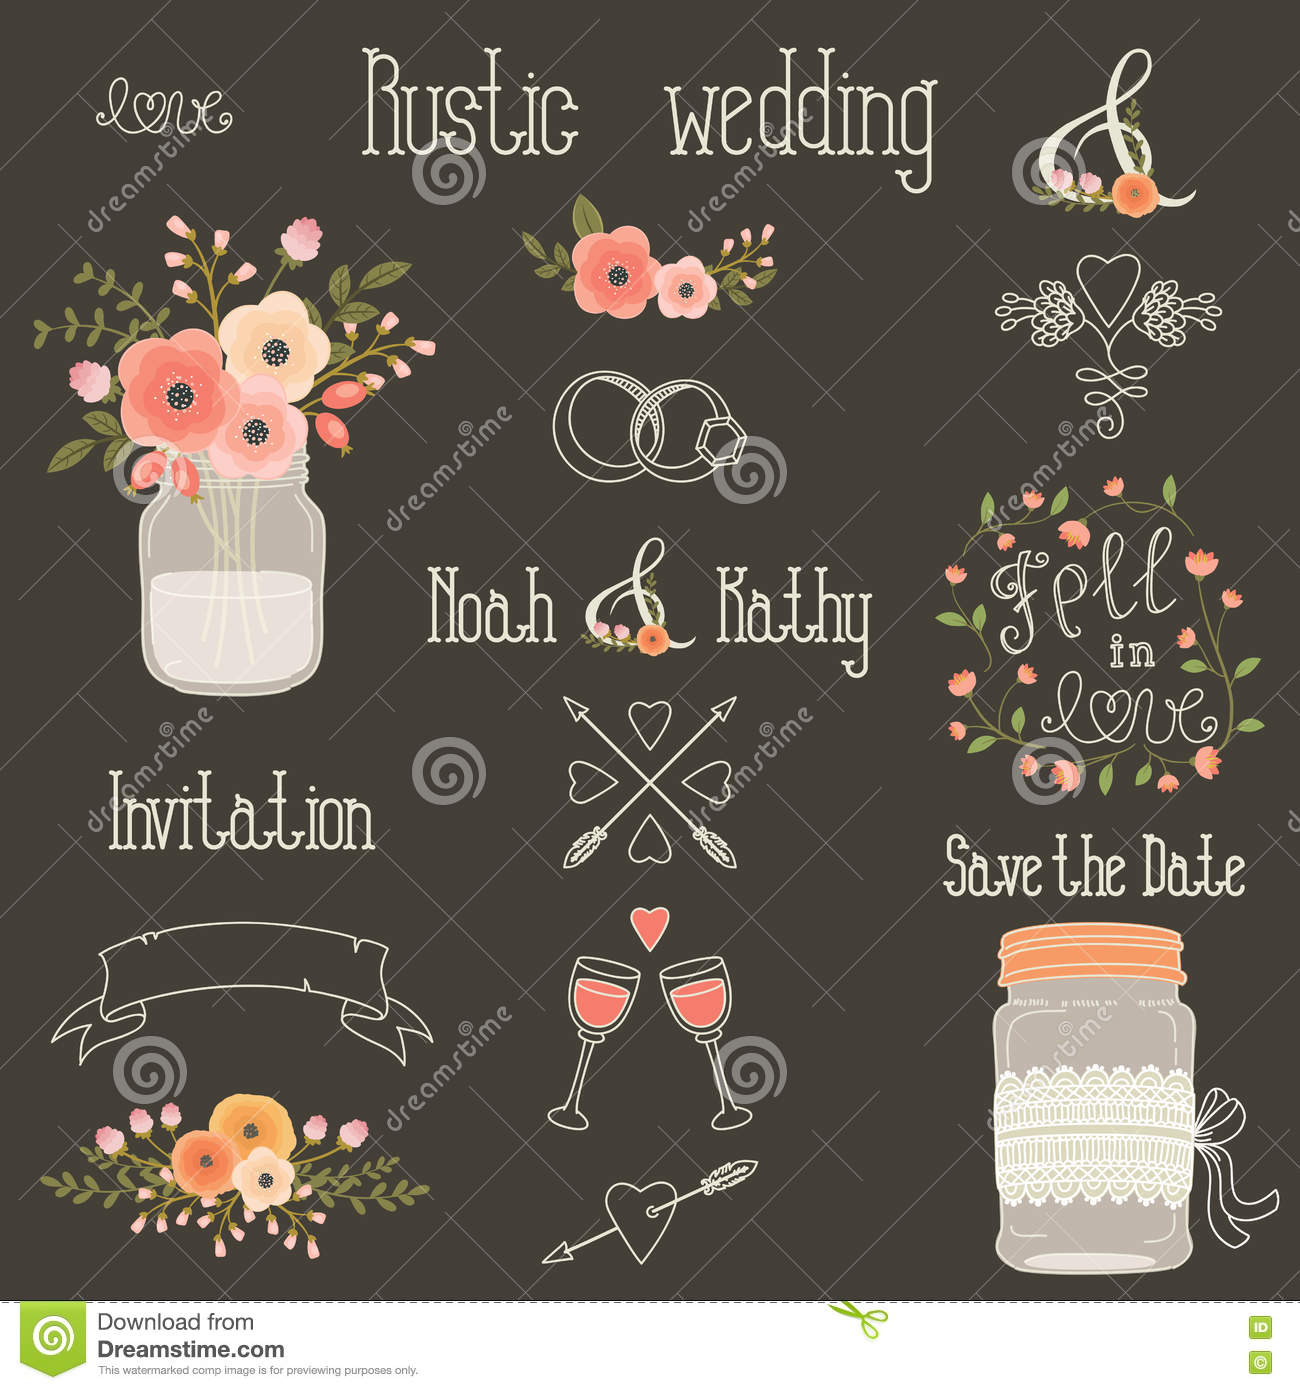 rustic wedding vector design elements stock vector image